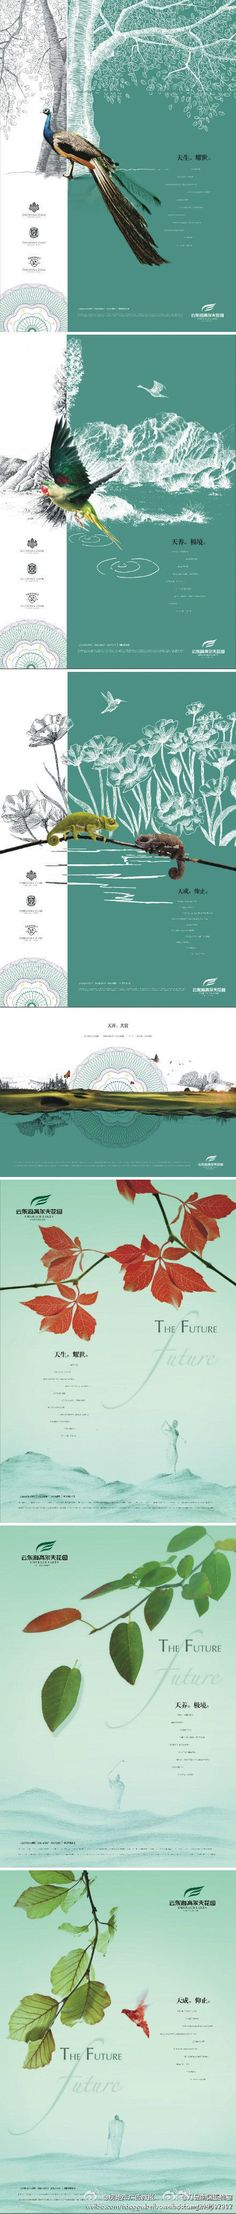 Nice designs Print Layout, Layout Design, Graphic Design Posters, Typography Design, Photoshop, Brochure Design, Branding Design, Book Design, Design Art